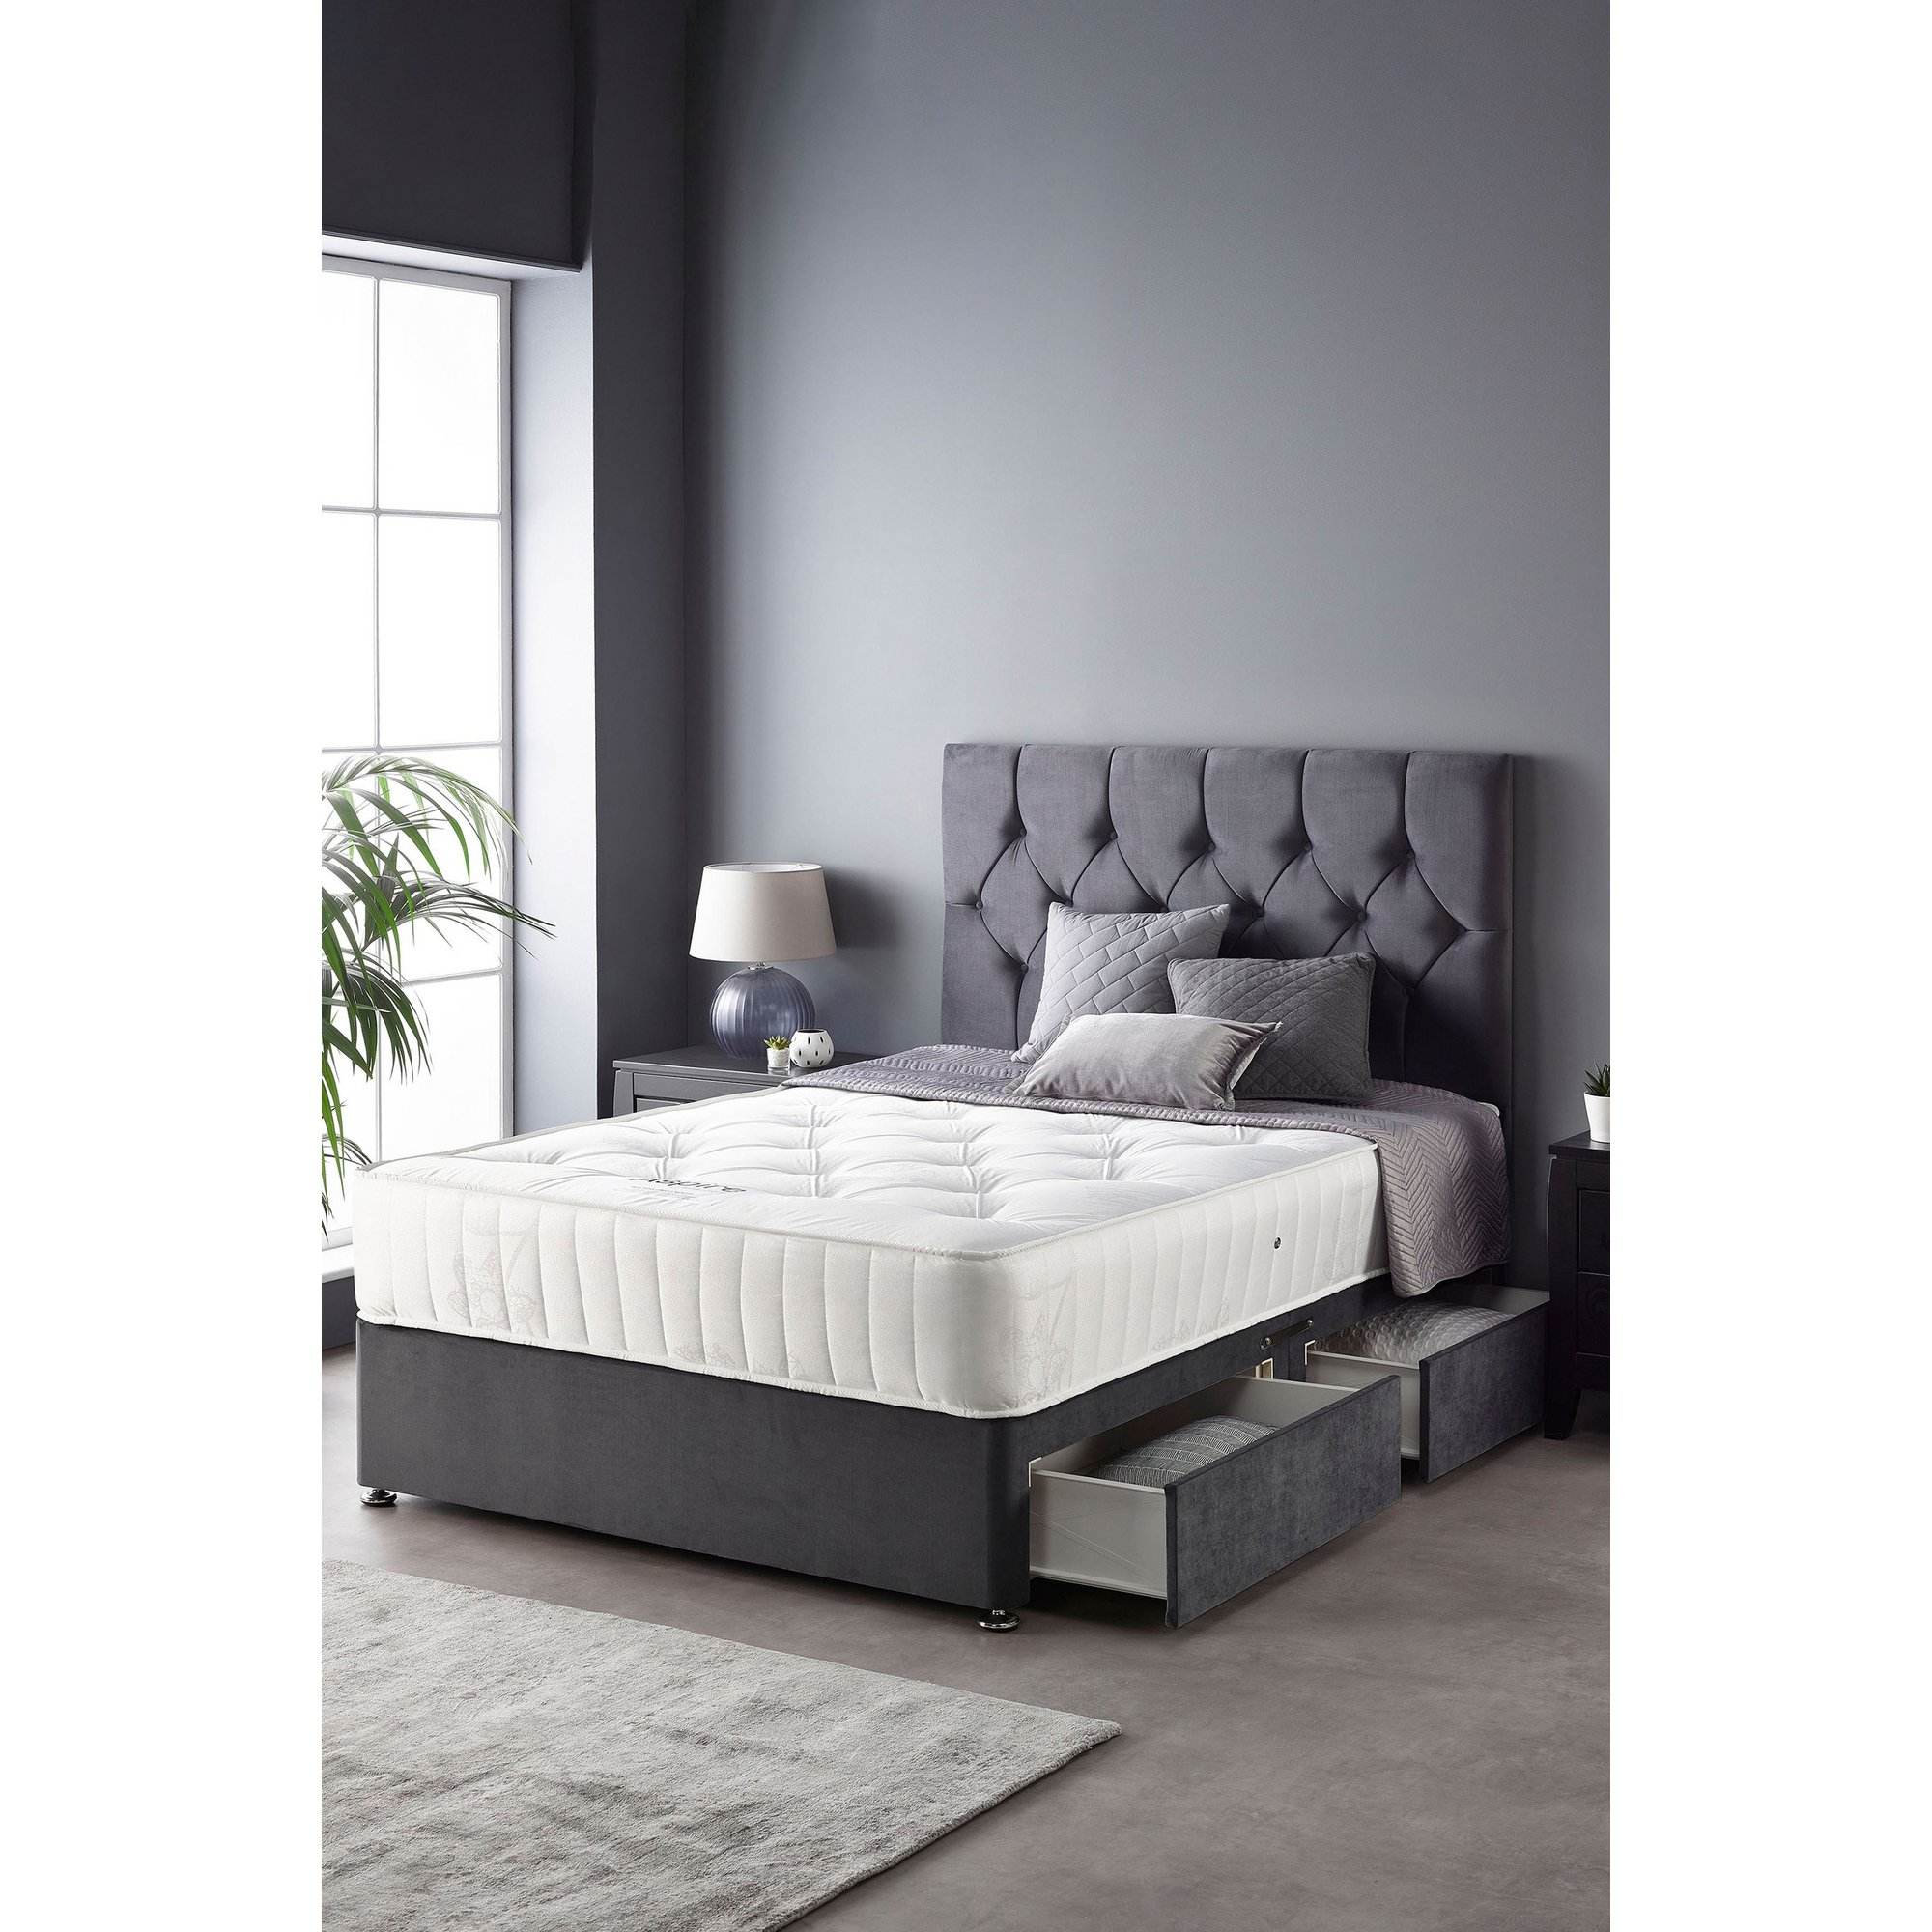 Image of Catherine Lansfield Boutique Ortho Pocket 2 Drawer Divan Bed